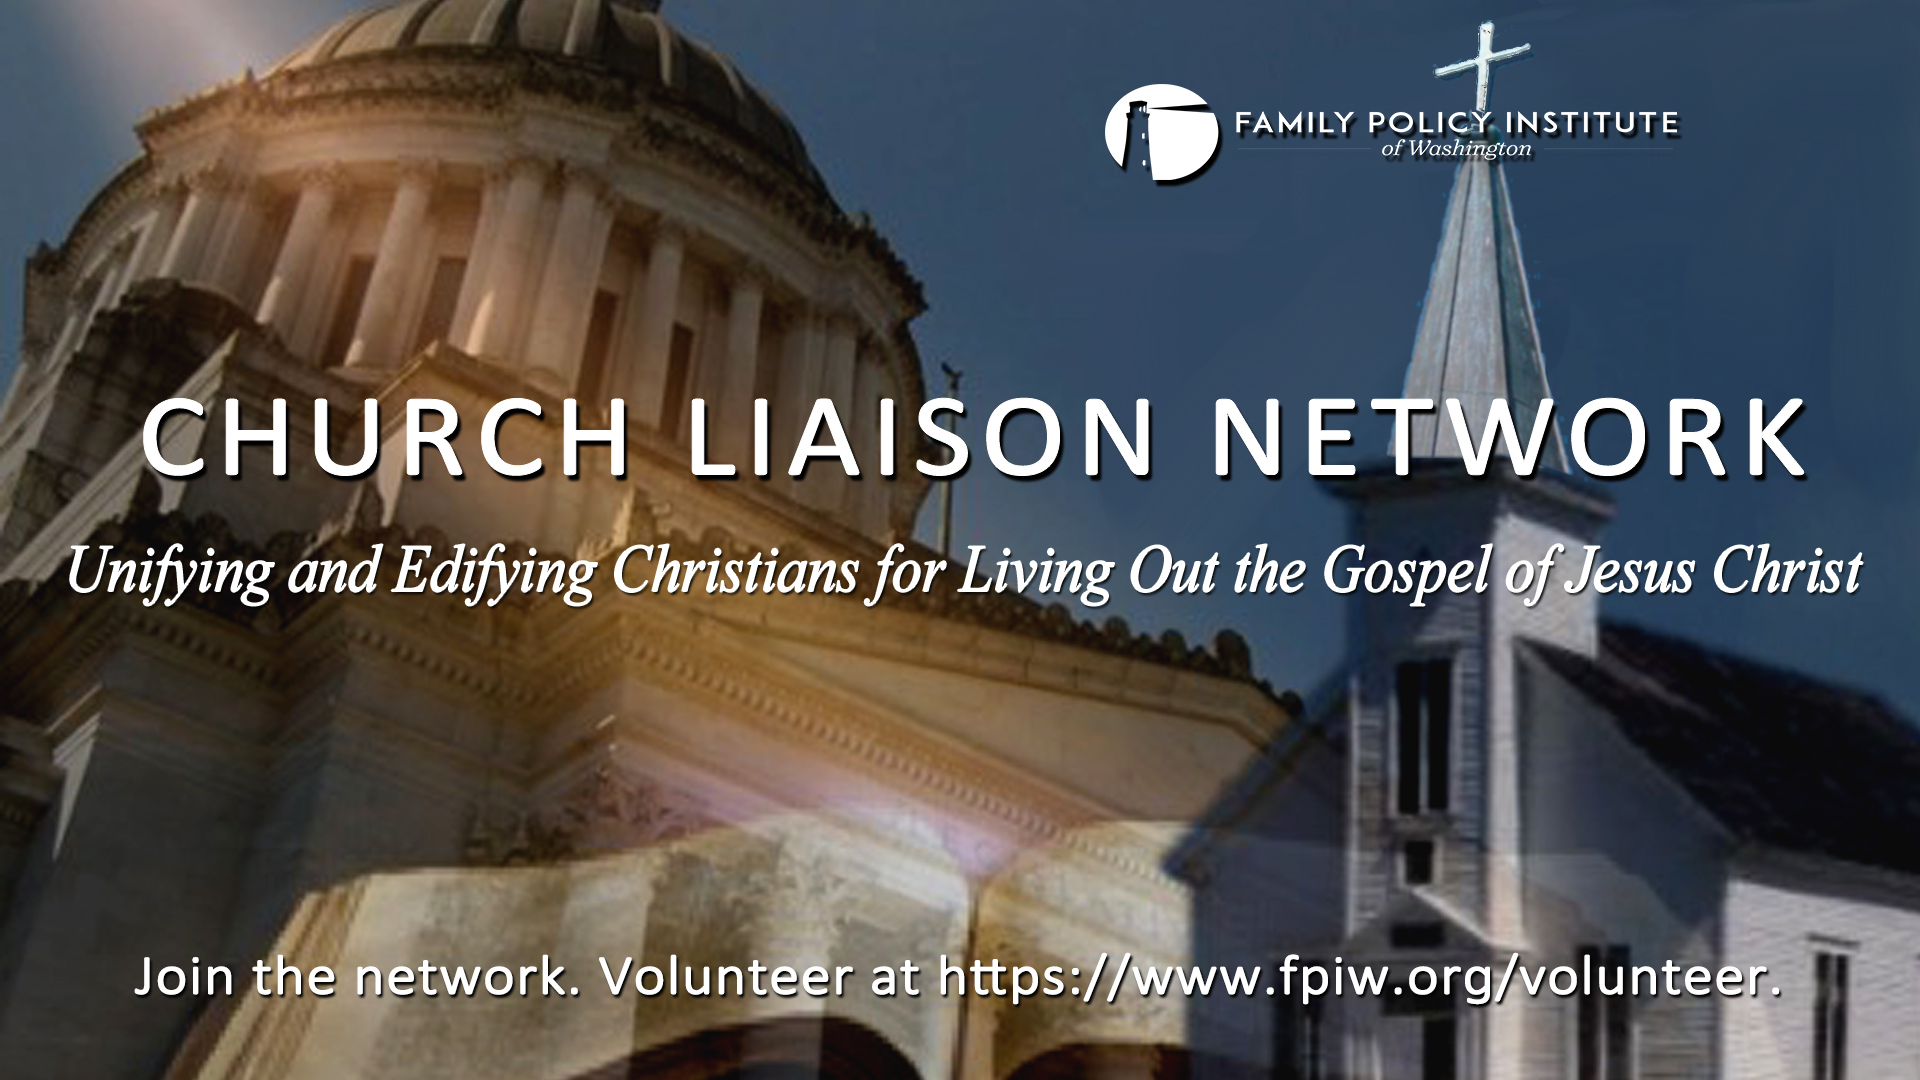 Volunteer as a Church Liaison